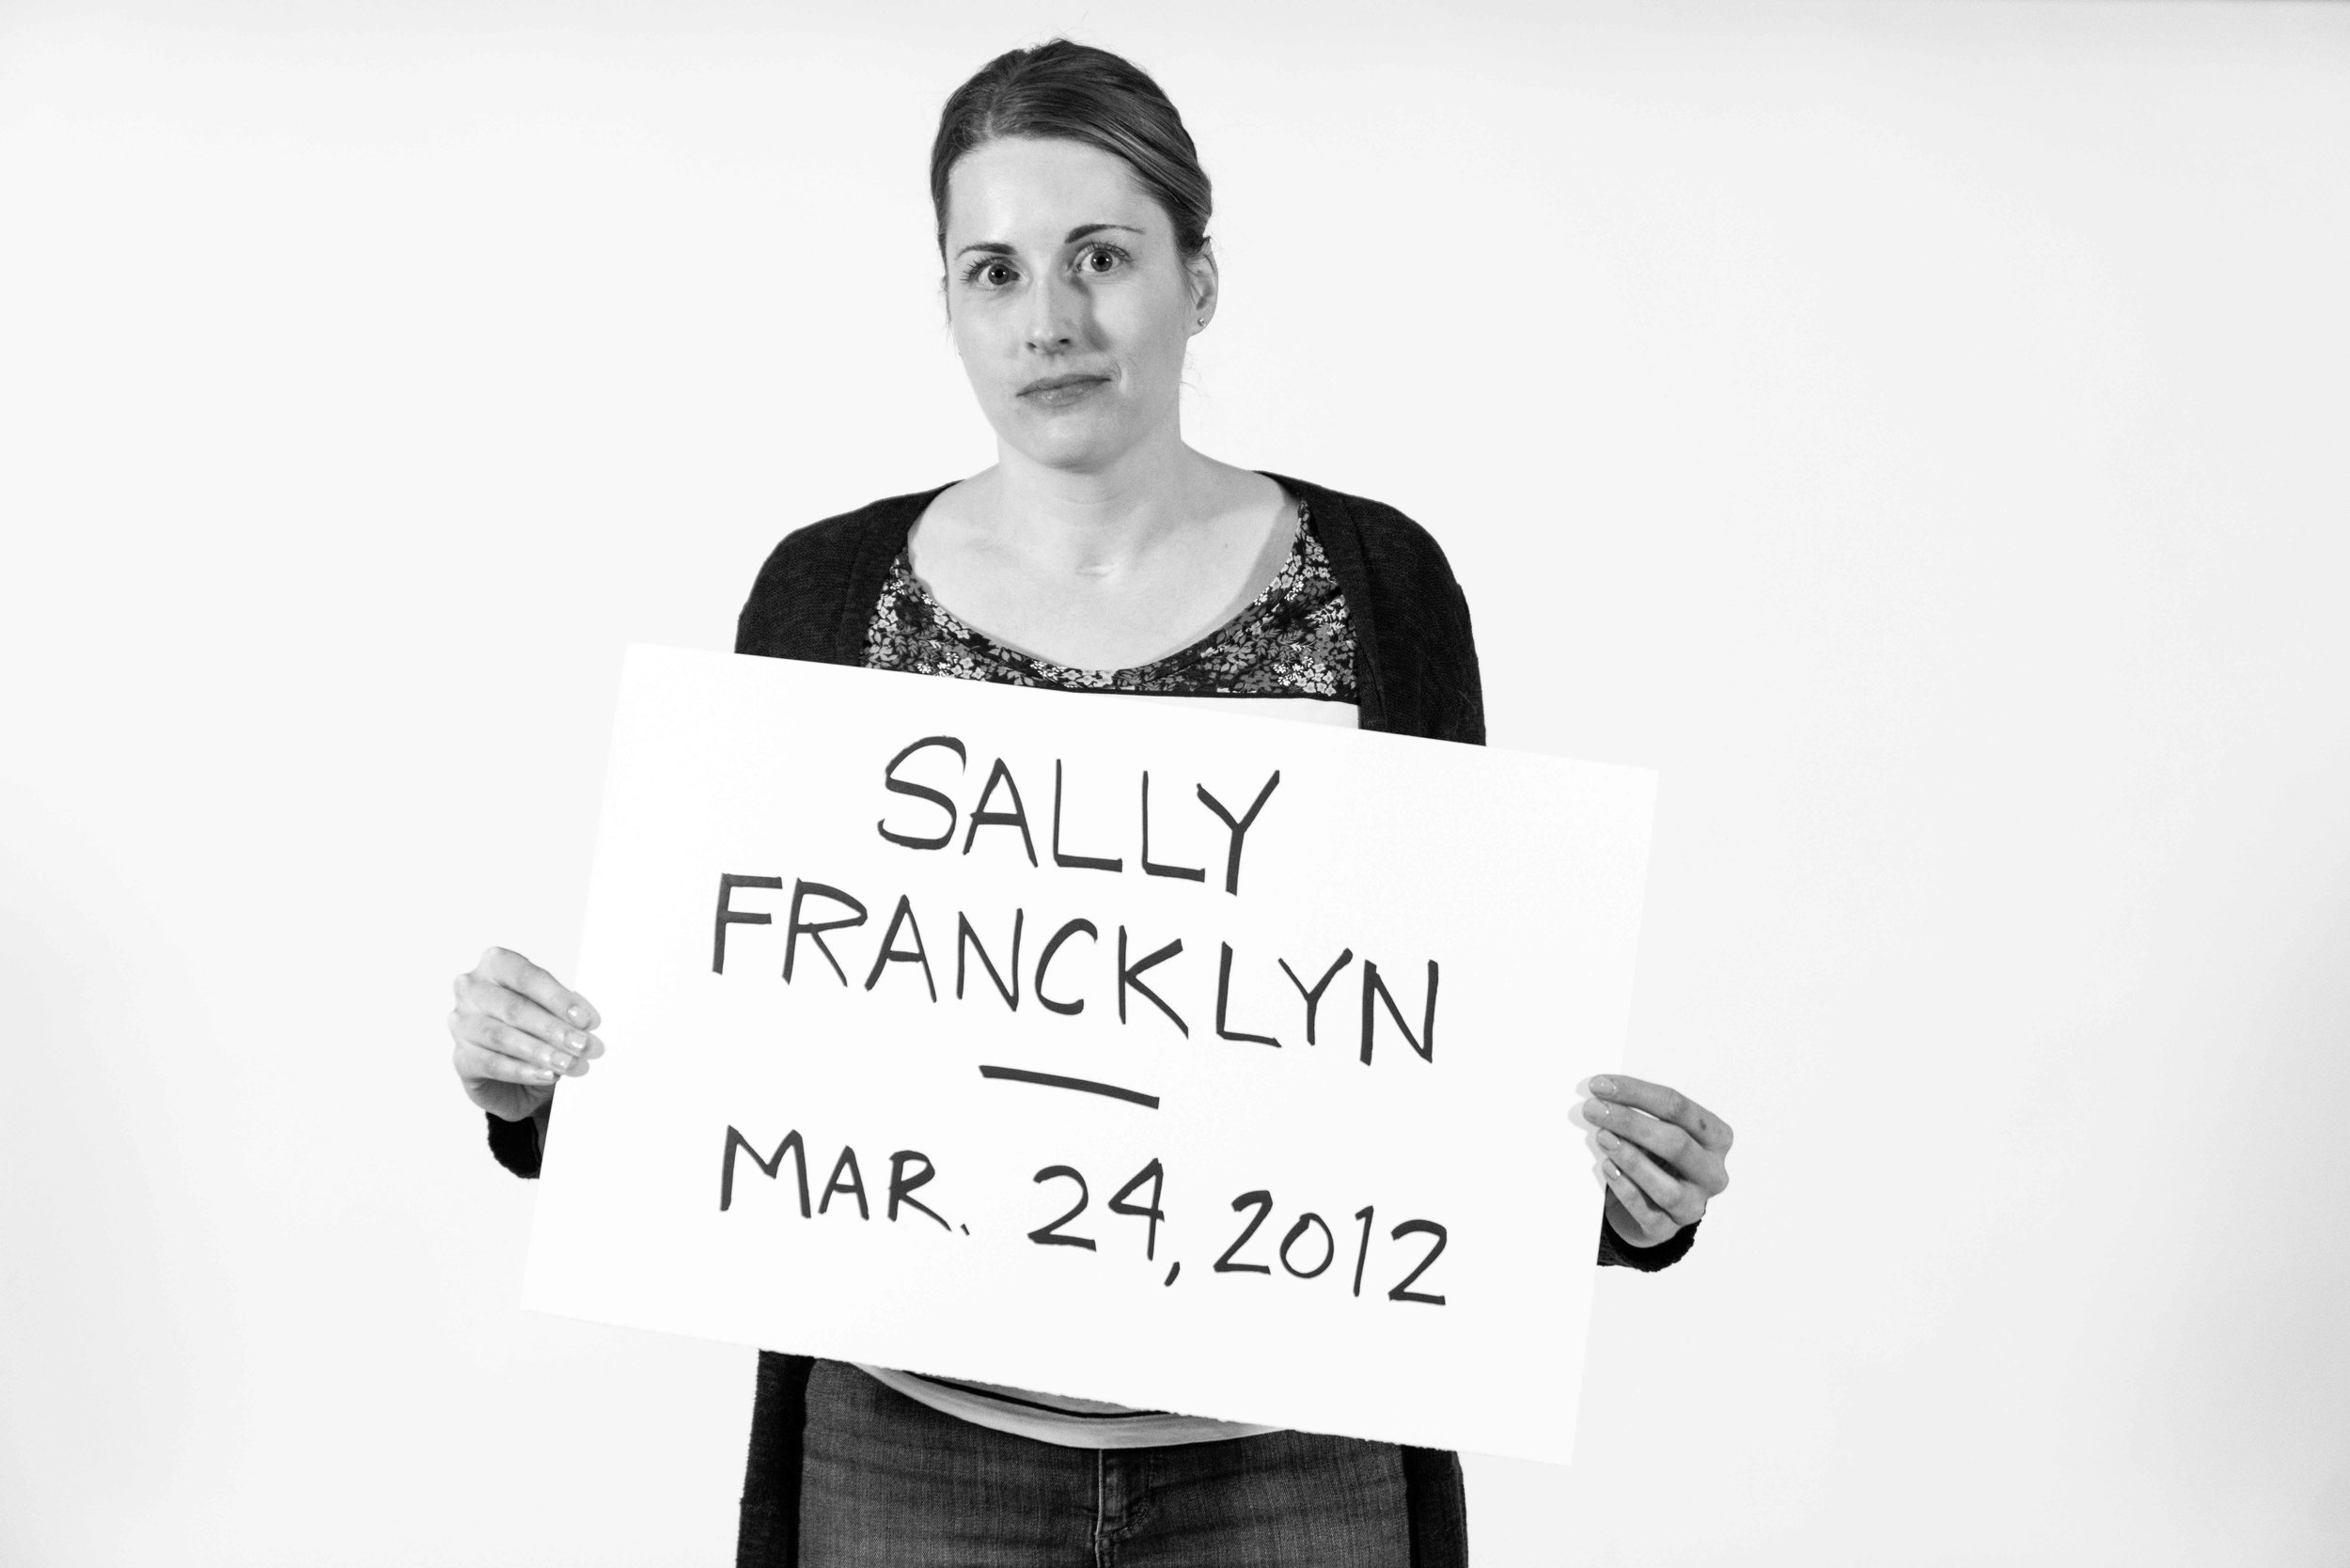 Sally Franklyn-1.jpg